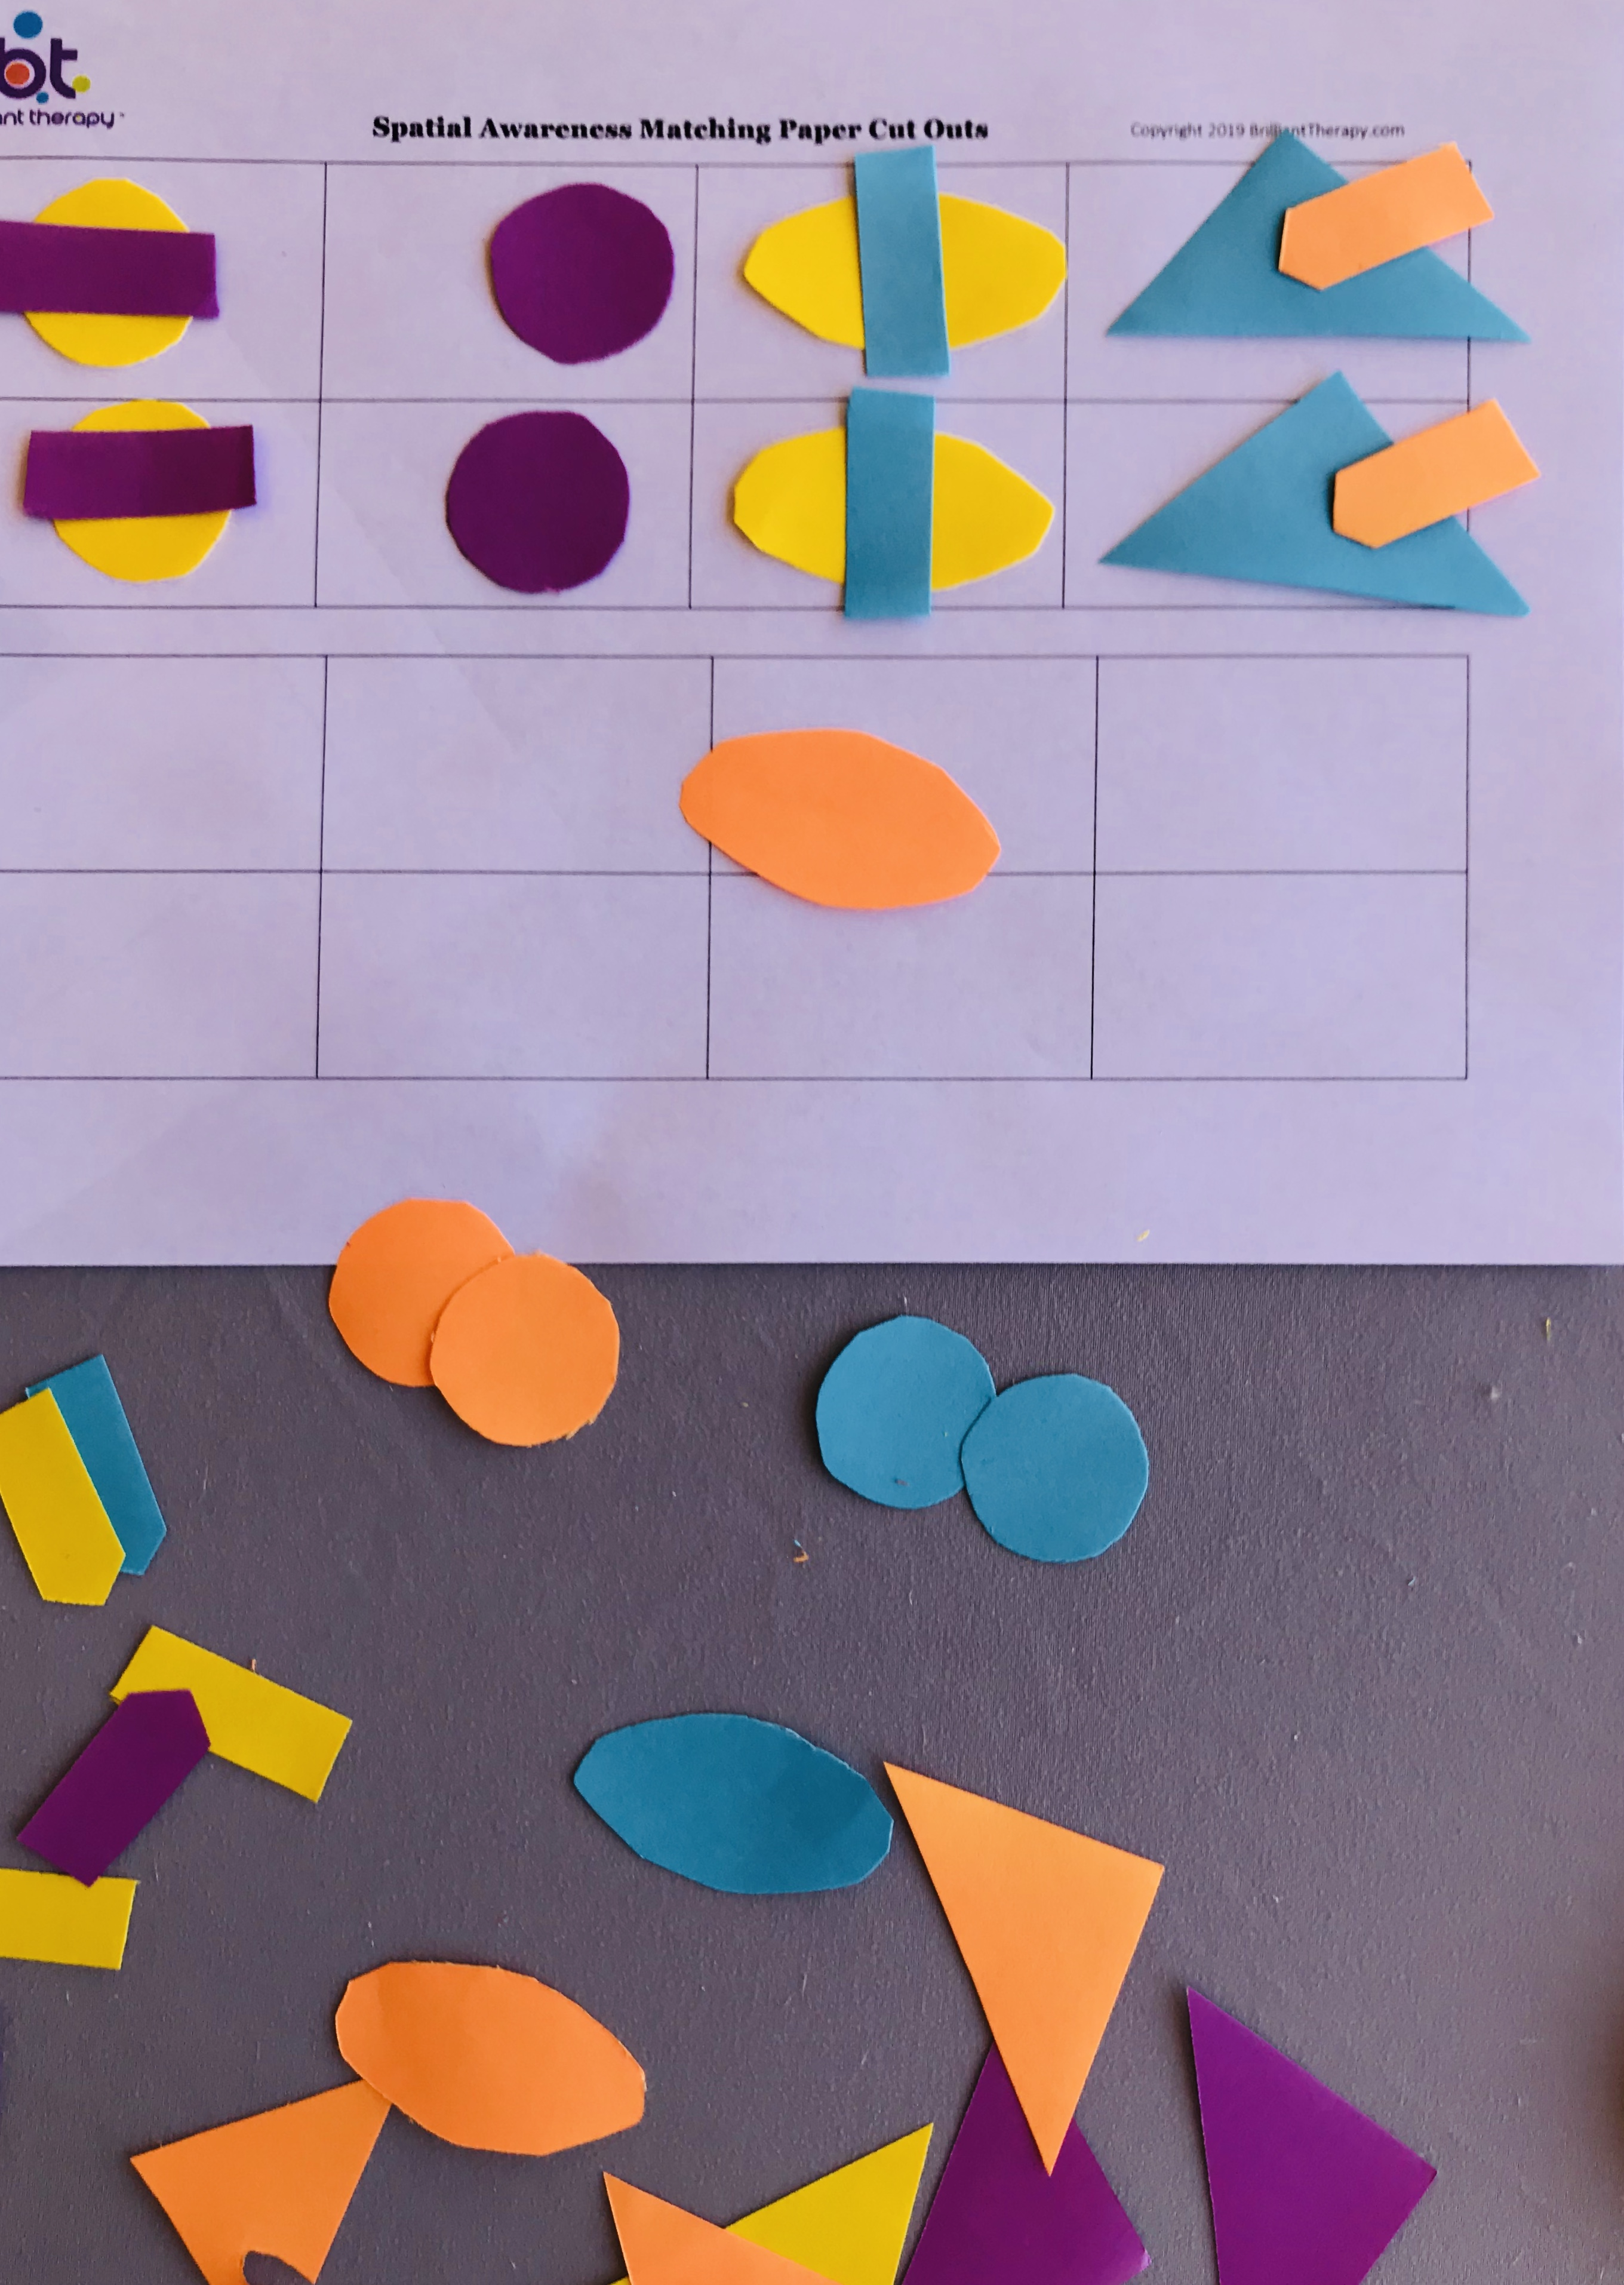 Cut out shapes on spatial awareness sheets